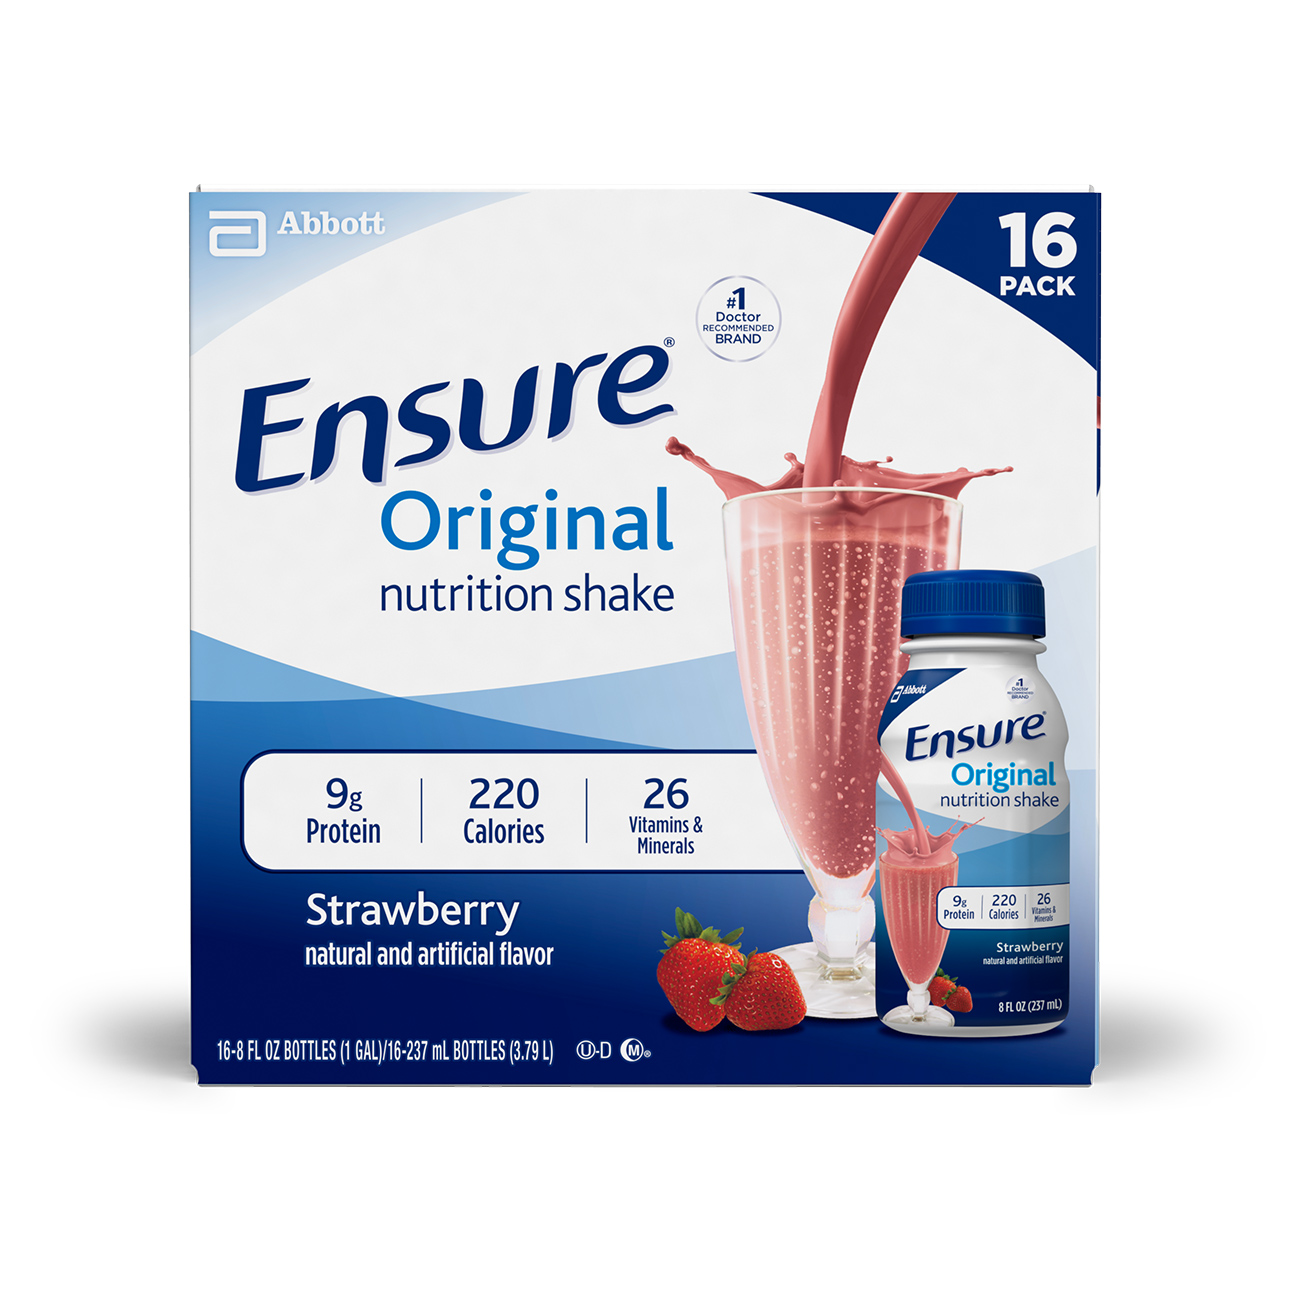 Ensure Original Nutrition Shake with 9 grams of protein, Meal Replacement Shakes, Strawberry, 8 fl oz, 16 Count